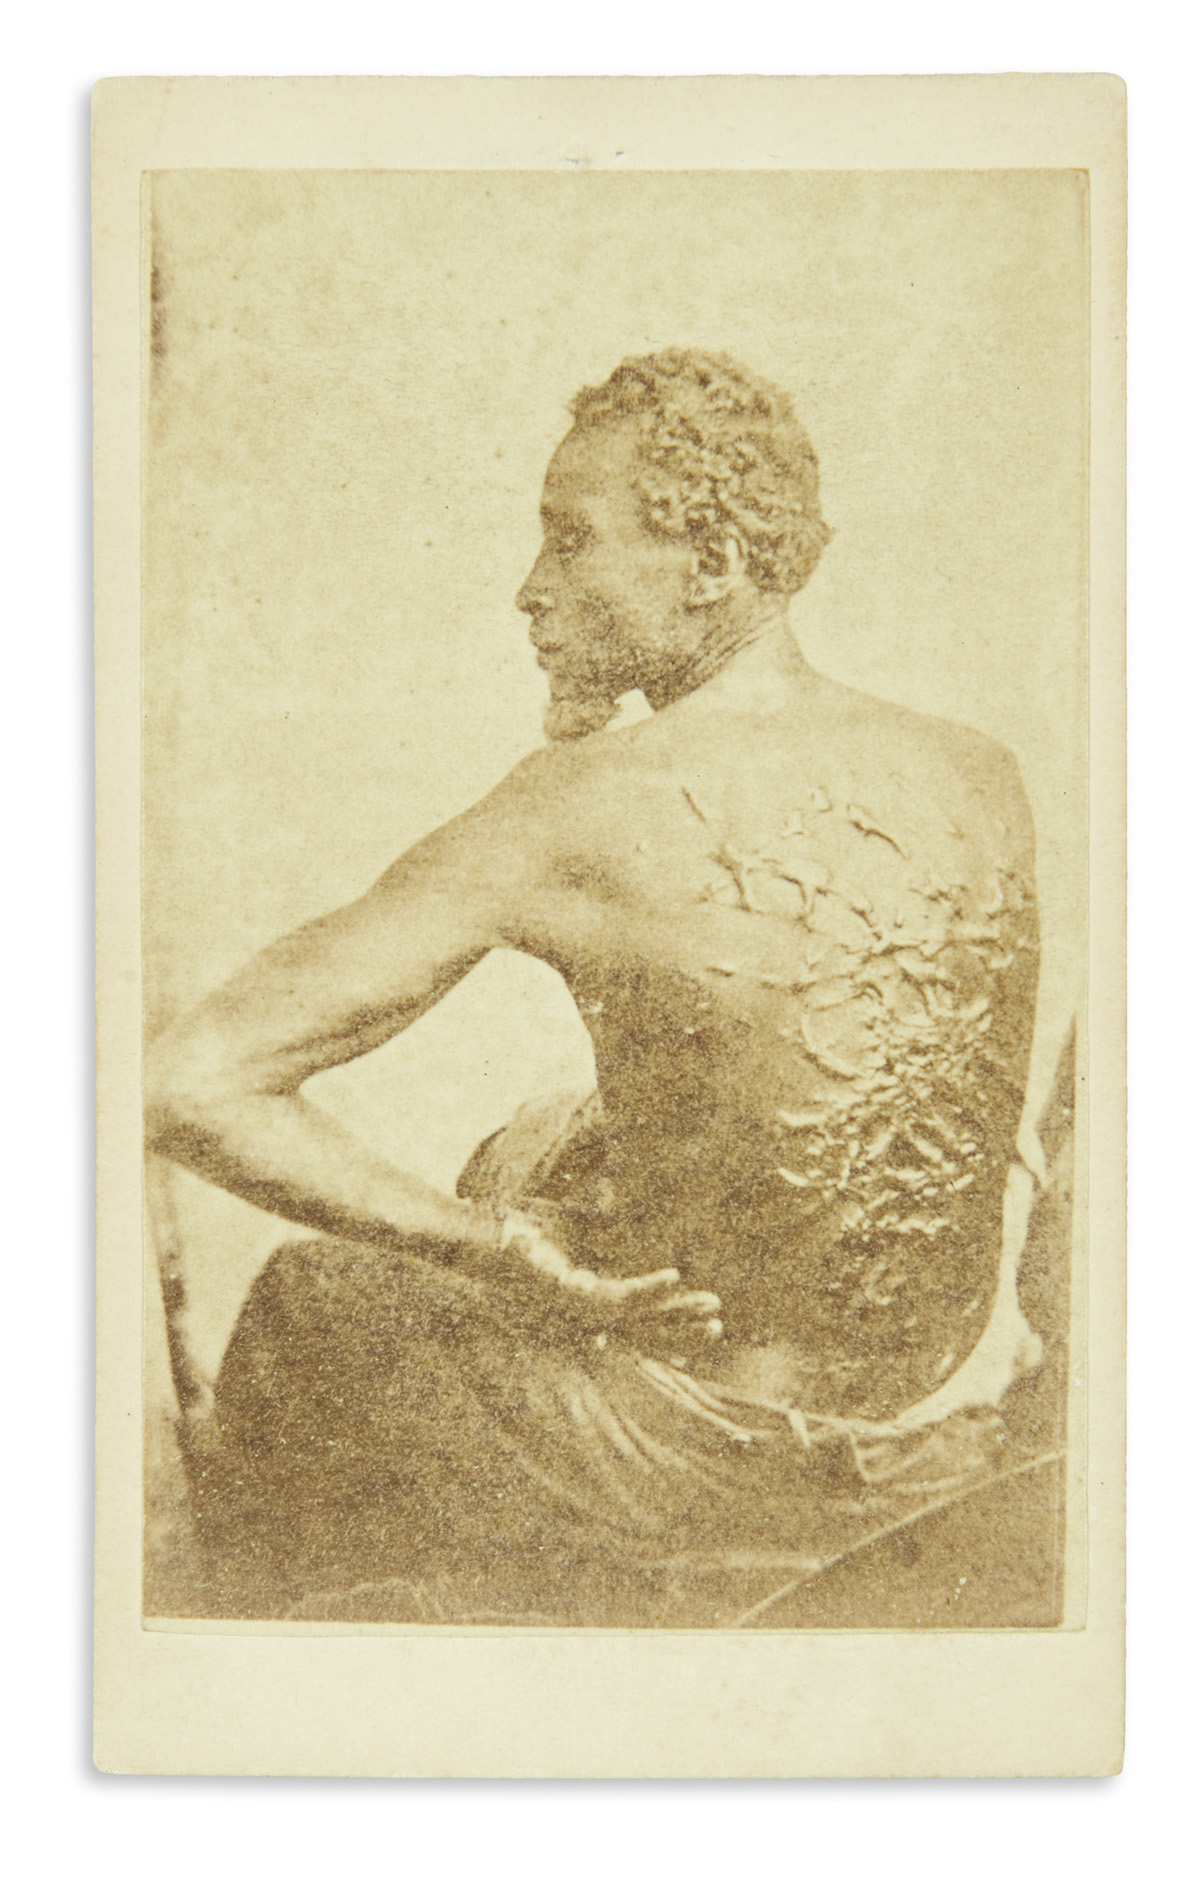 (SLAVERY AND ABOLITION.) [McPherson & Oliver; photographers.] The Scourged Back.